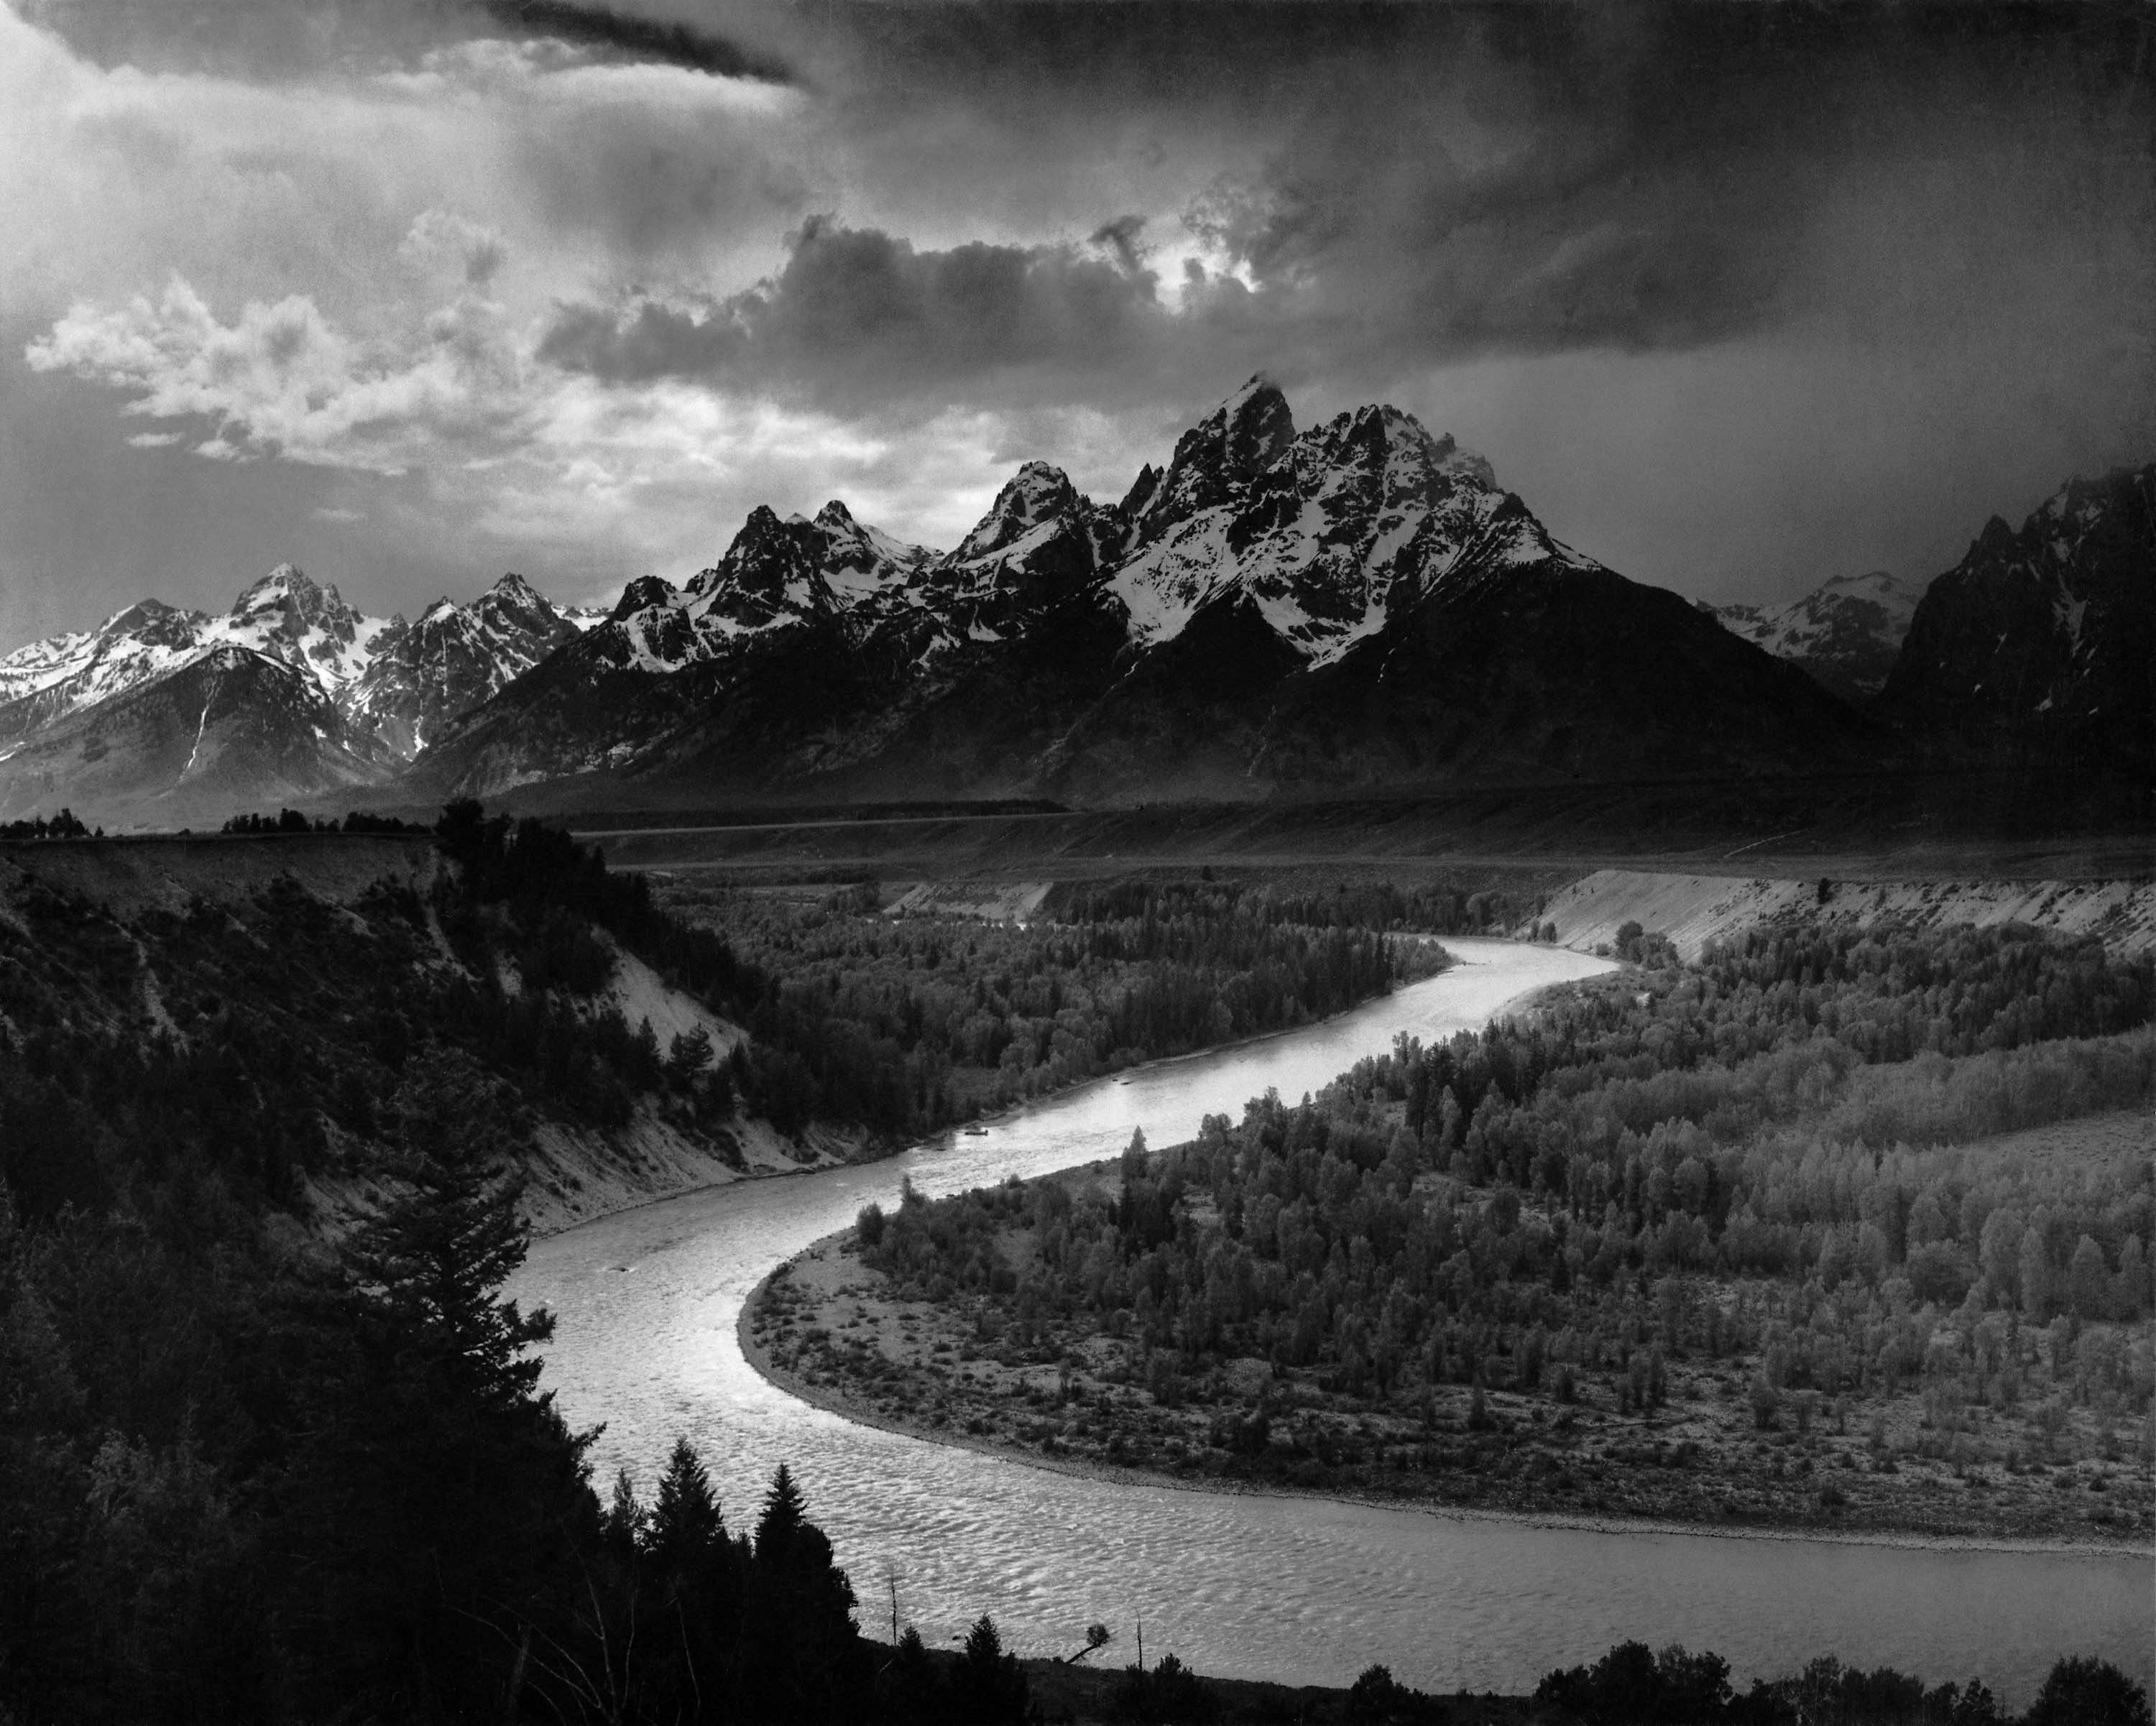 The Tetons and the Snake River, Grand Teton National Part, Wyoming, 1942. Photograph by Ansel Adams.